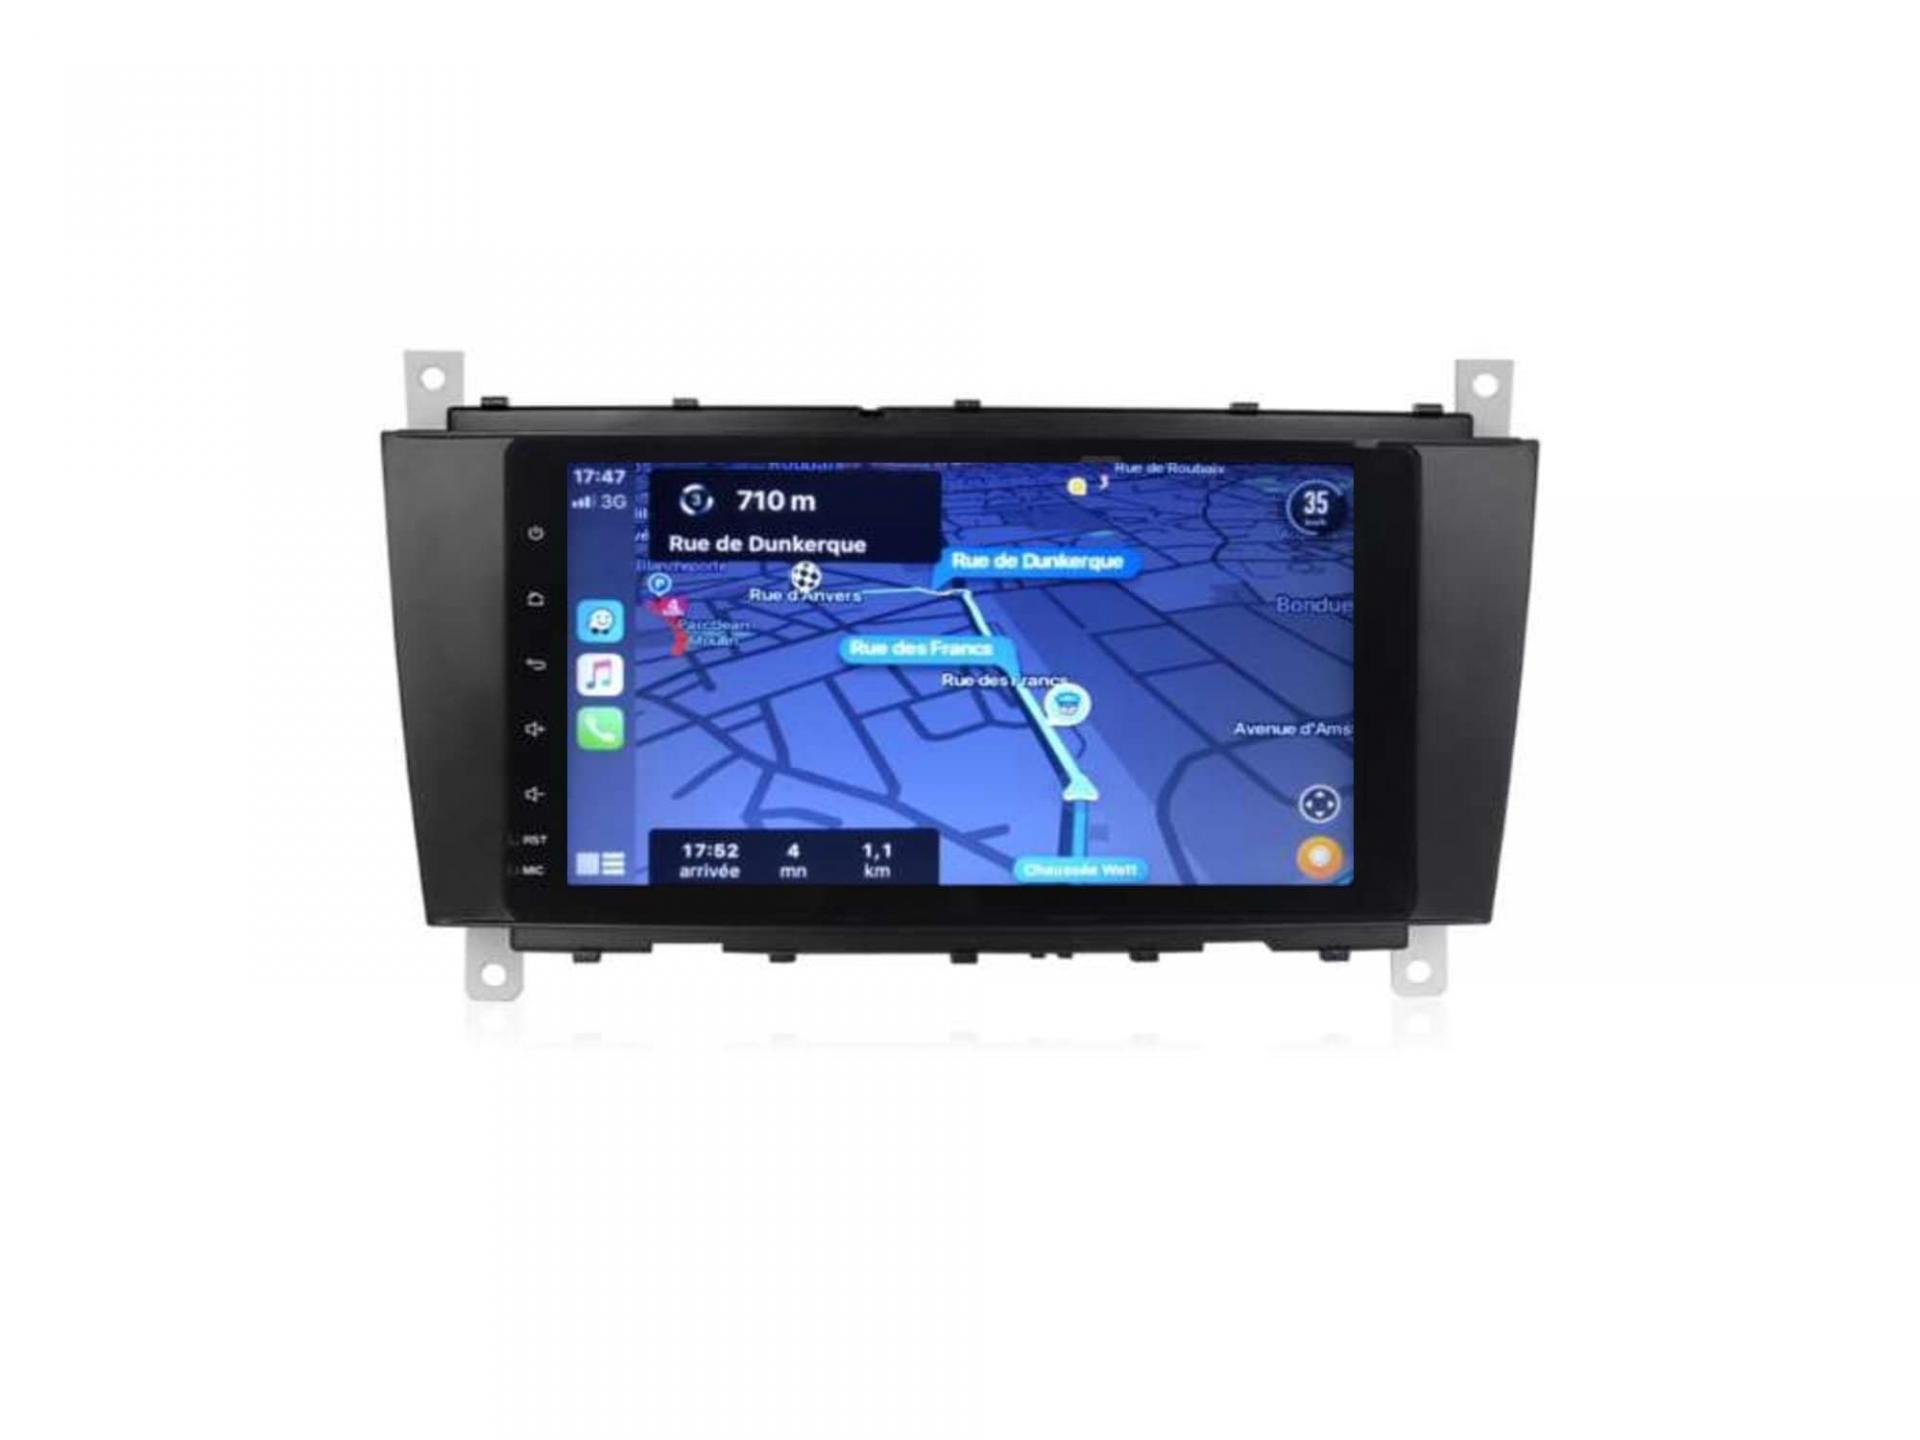 Autoradio gps bluetooth carplay android auto mercedes classe c w203 phase 1 classe g clk vito viano 4